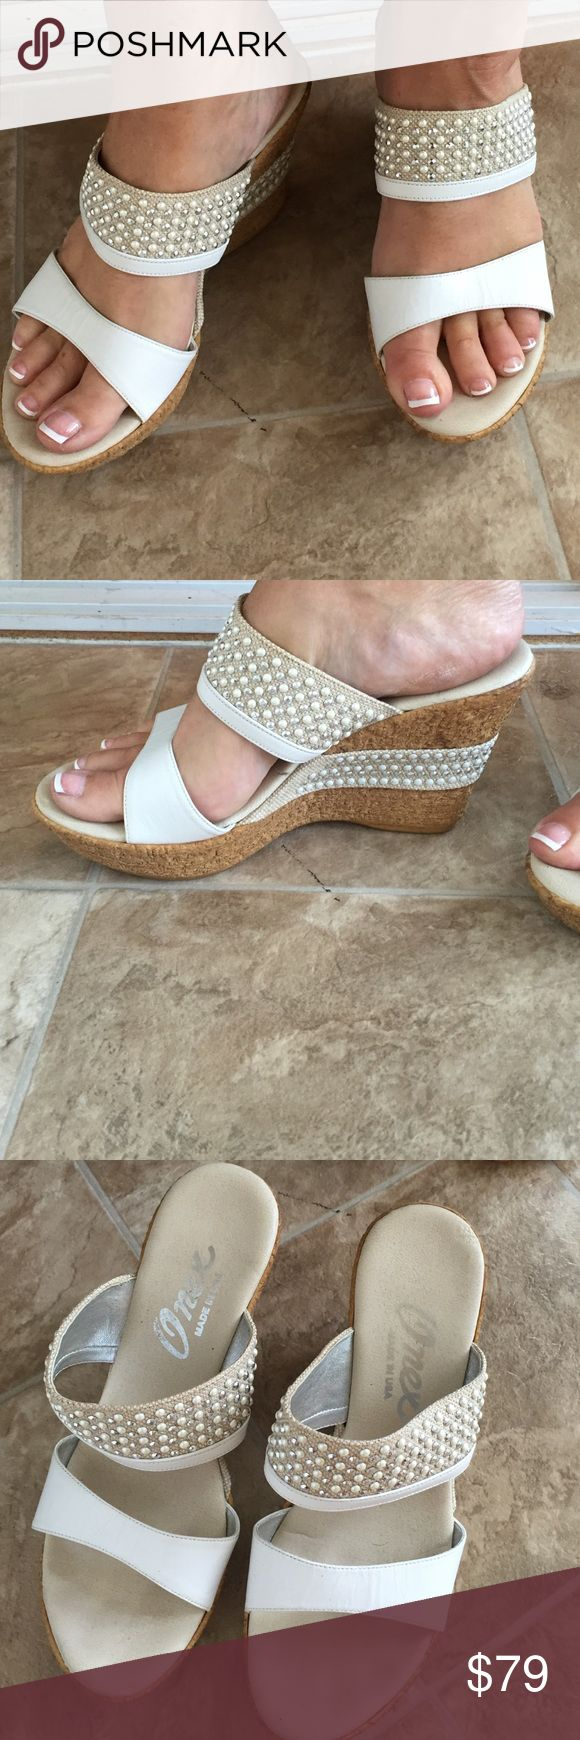 Onex white wedges Great quality! Only worn twice Onex Shoes Wedges